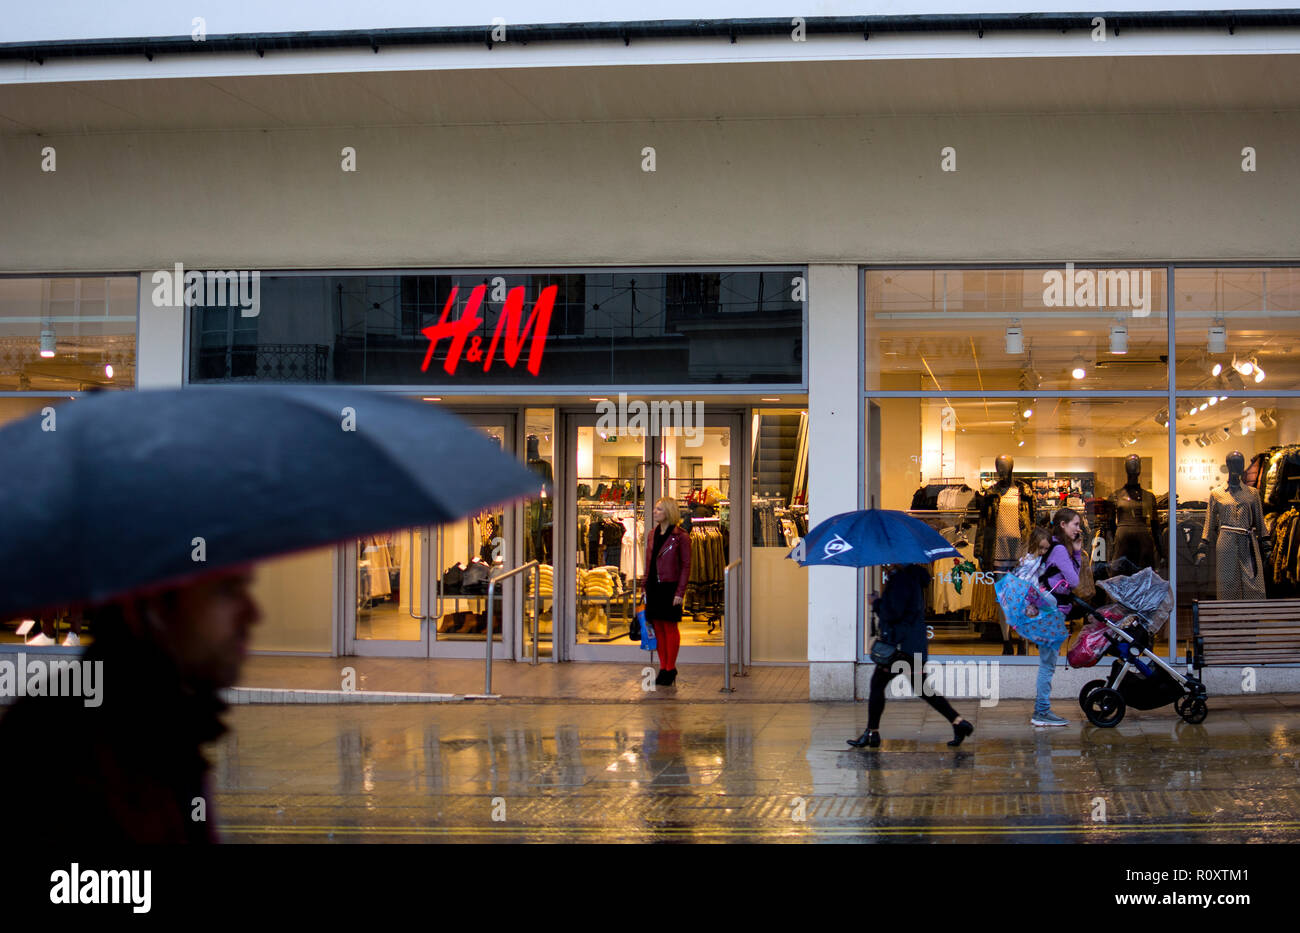 H&M store in The Parade, Leamington Spa, Warwickshire, England, UK - Stock Image